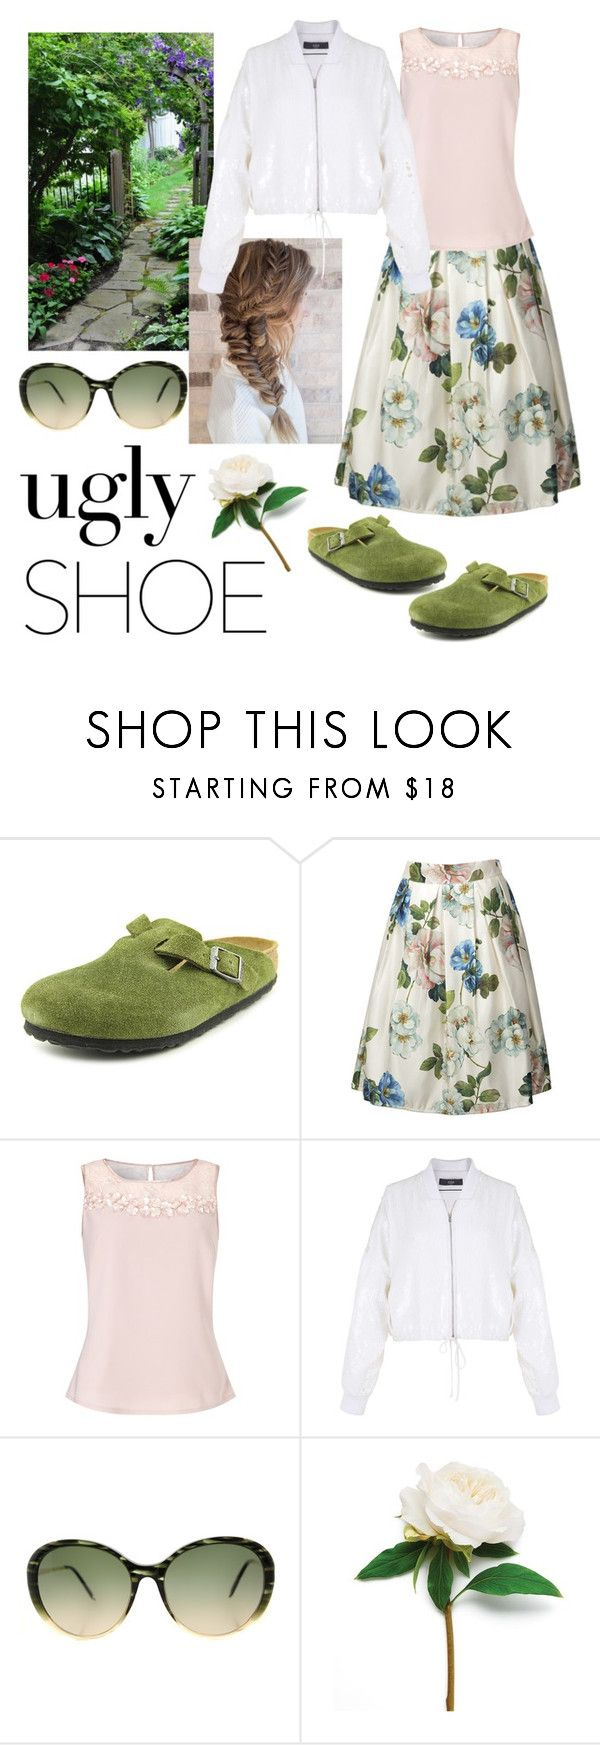 """""""Buy ugly, look beautiful"""" by janew455 ❤ liked on Polyvore featuring Birkenstock, Jacques Vert, TIBI and Victoria Beckham"""